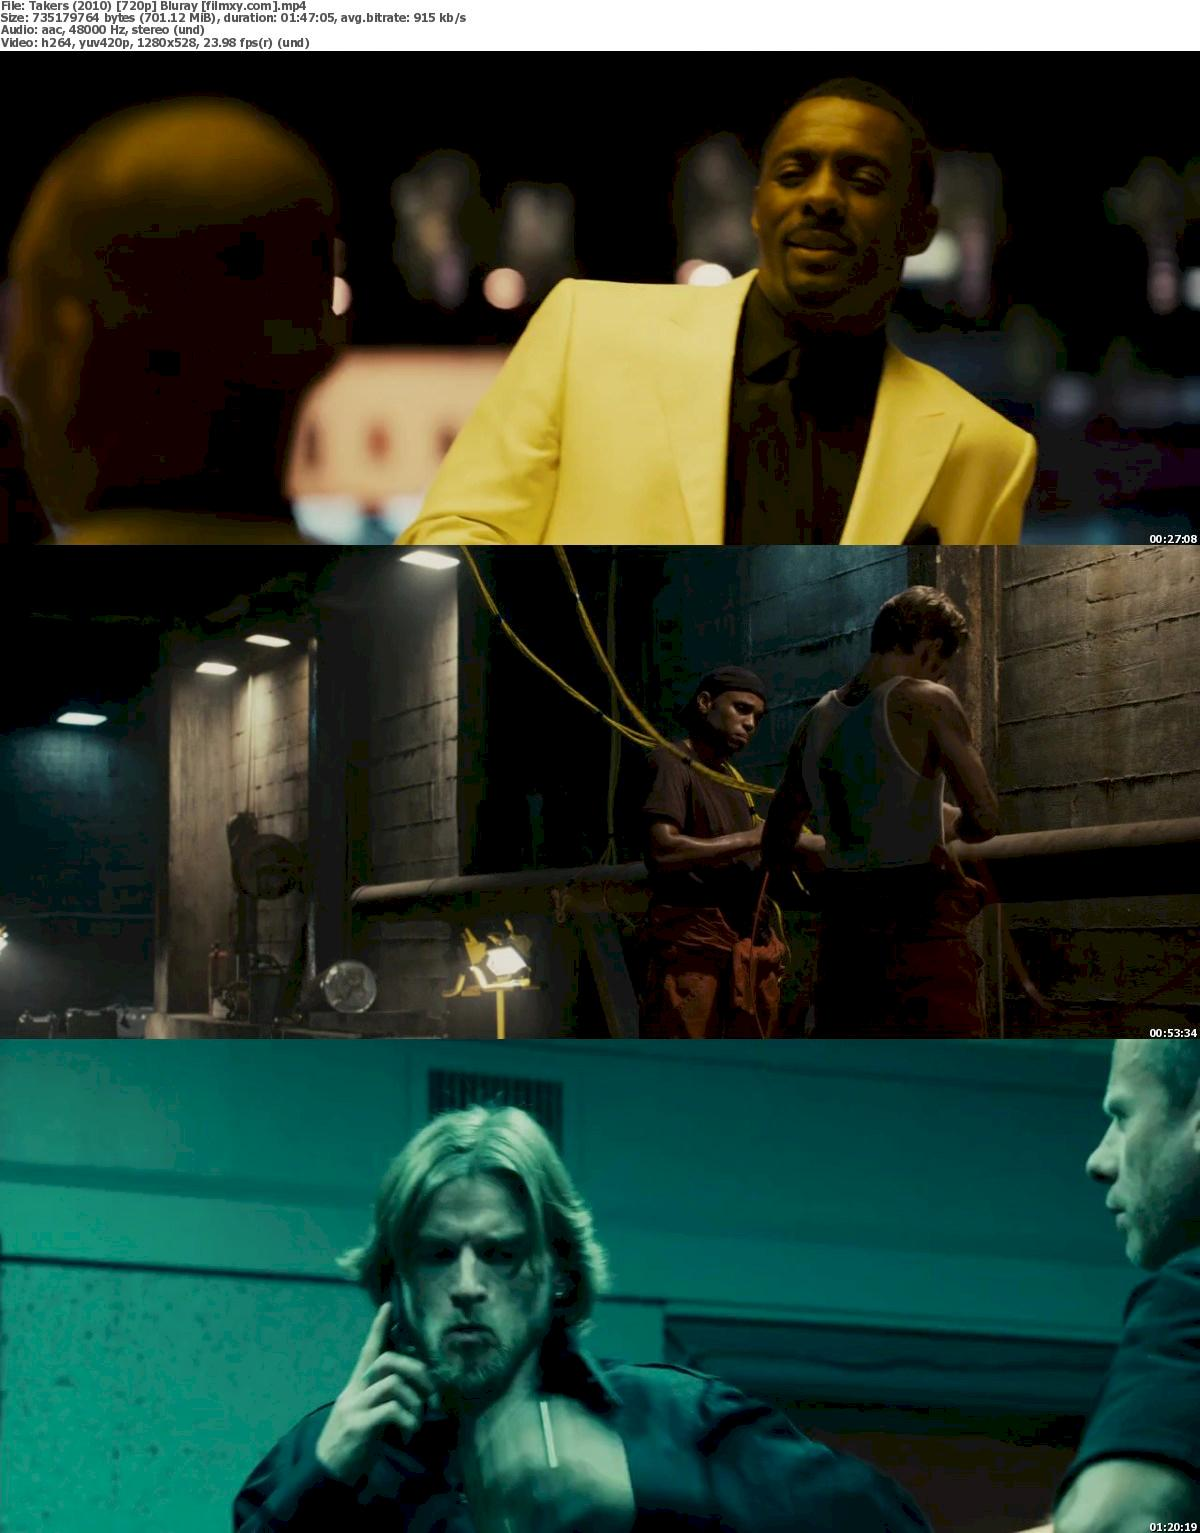 Takers (2010) 720p & 1080p Bluray Free Download 720p Screenshot